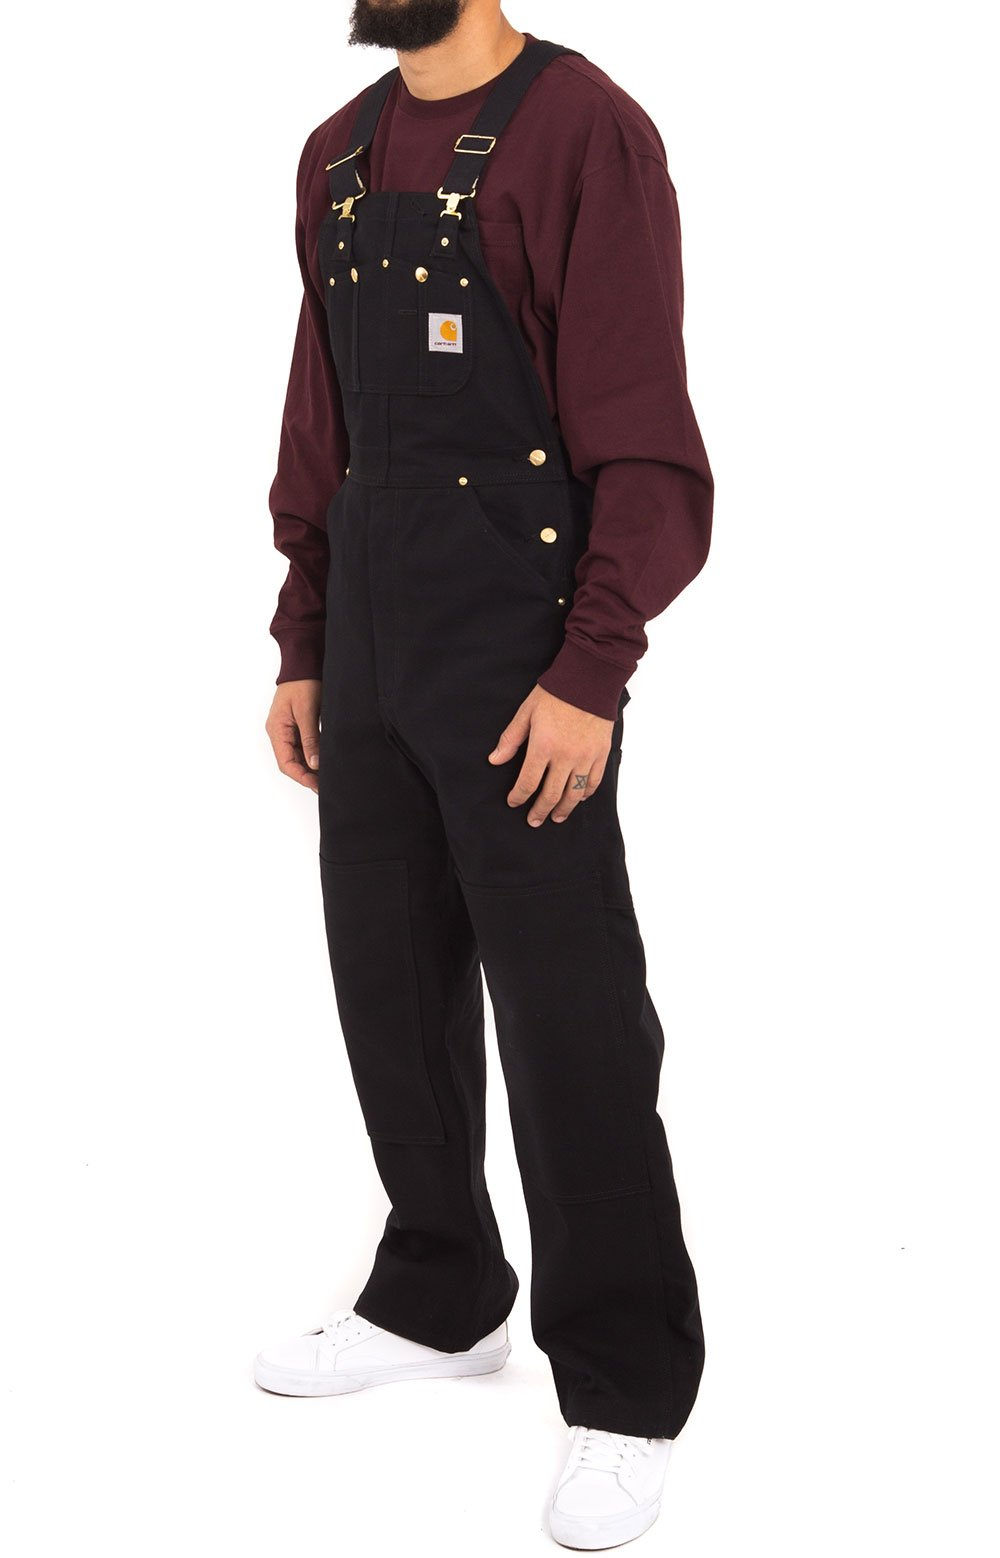 (102776) Relaxed Fit Duck Bib Overalls - Black 2